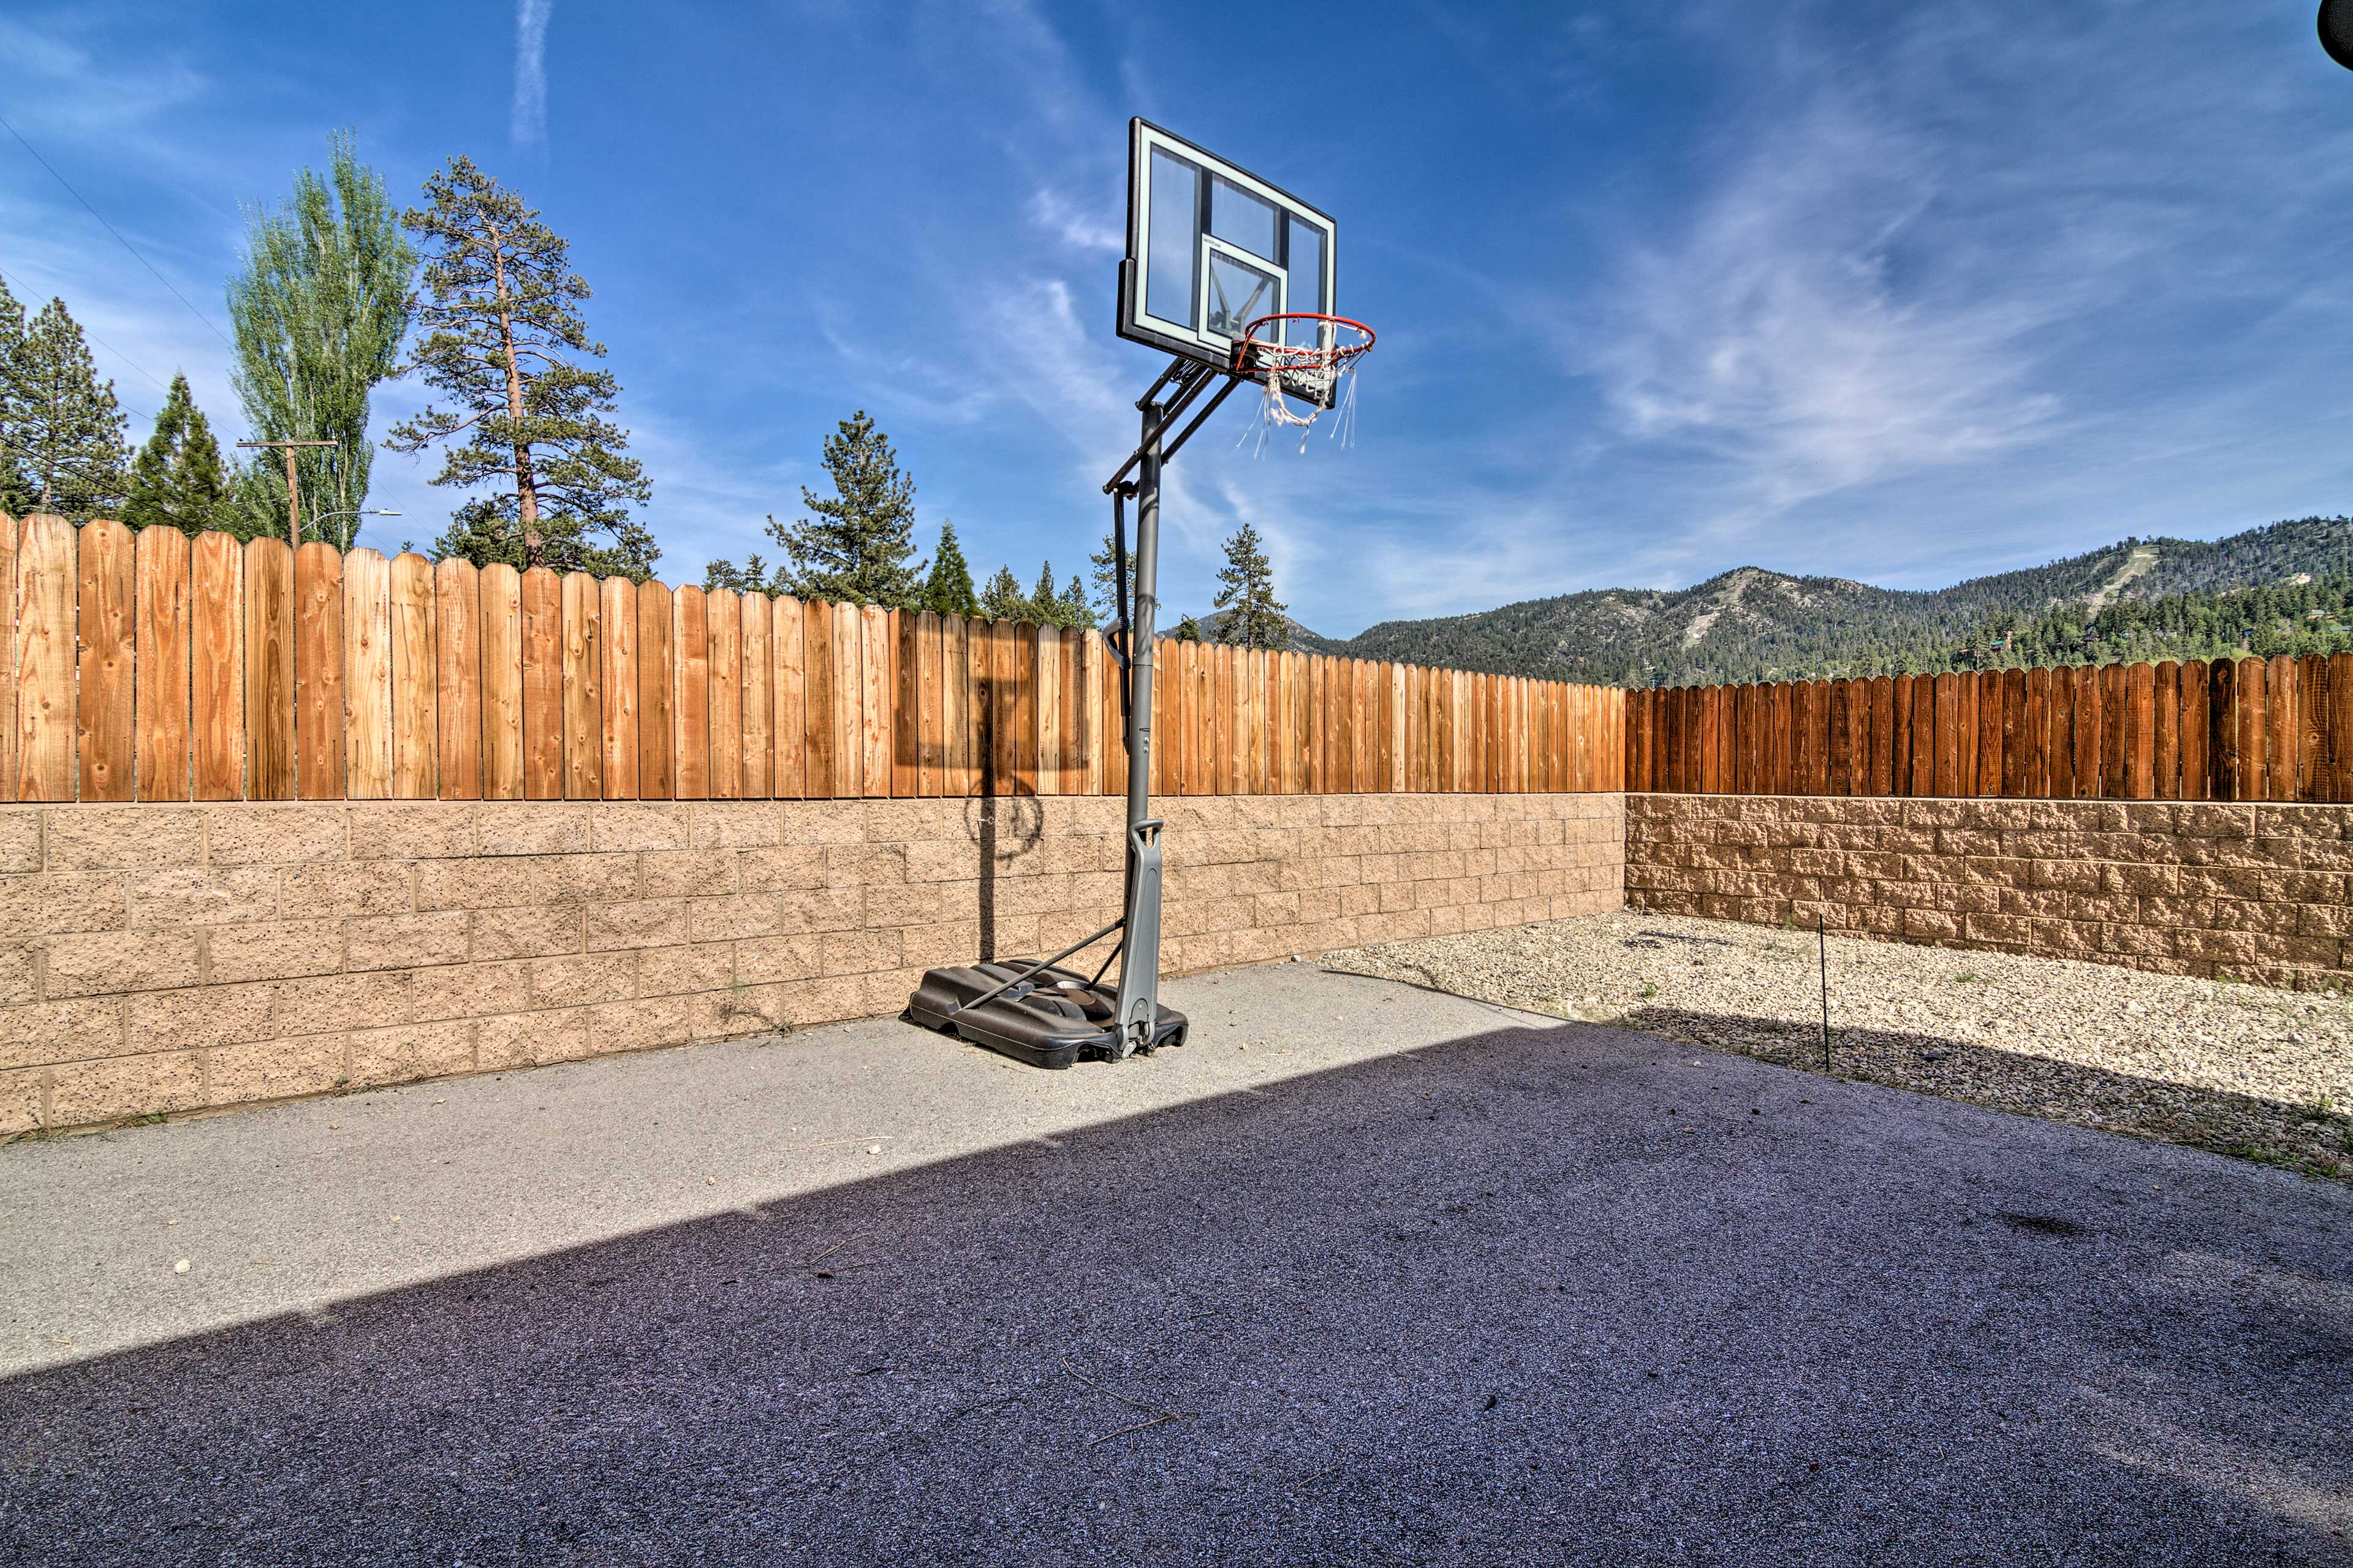 The kids will love shooting hoops in the driveway.